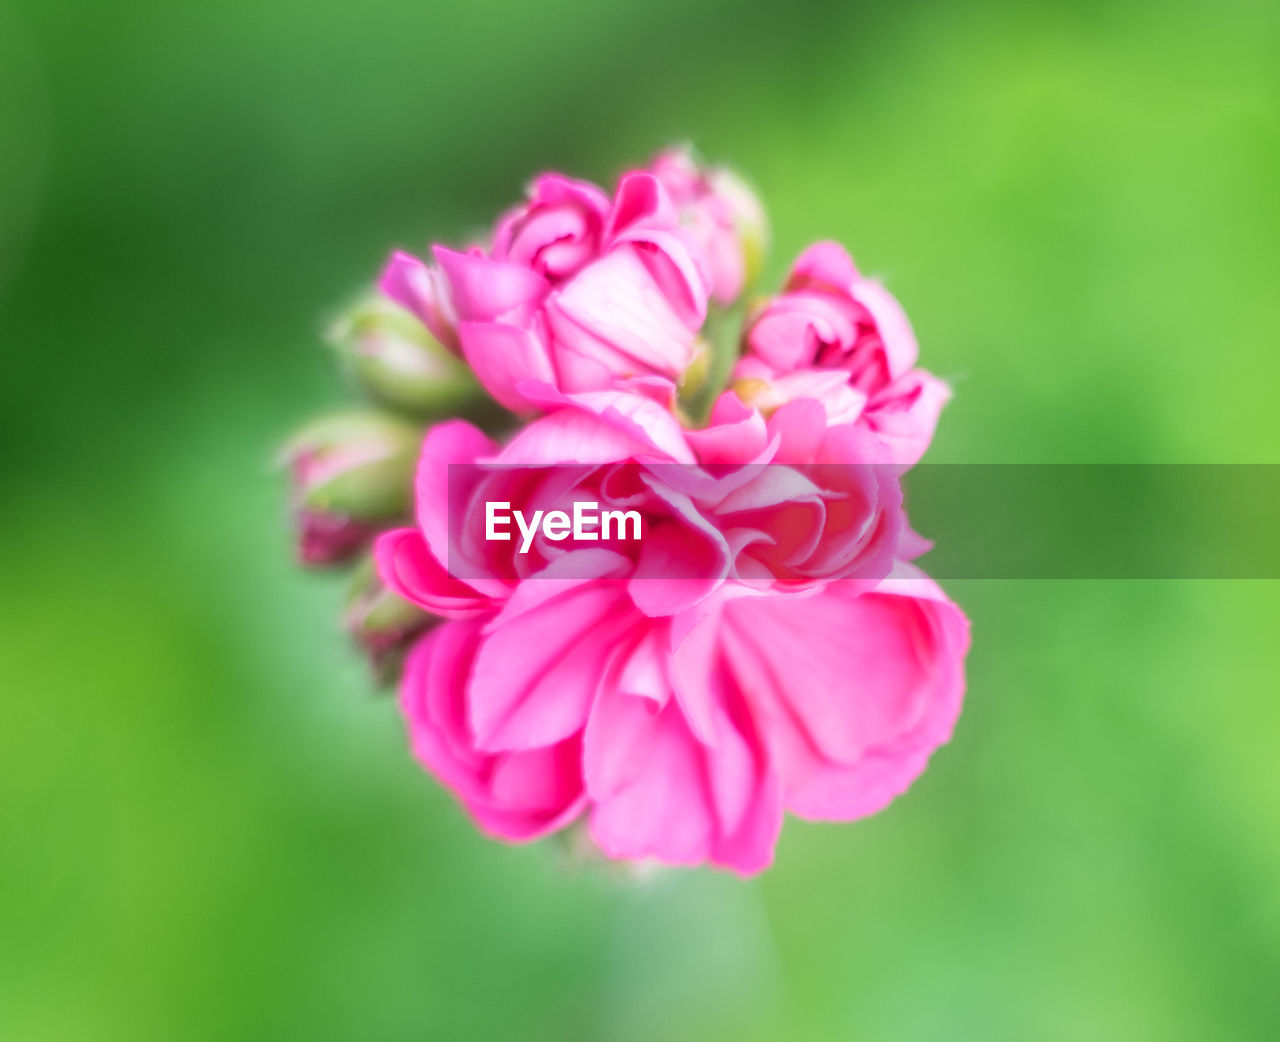 beauty in nature, pink color, flowering plant, flower, freshness, close-up, inflorescence, flower head, plant, fragility, vulnerability, petal, no people, nature, focus on foreground, growth, day, selective focus, outdoors, green color